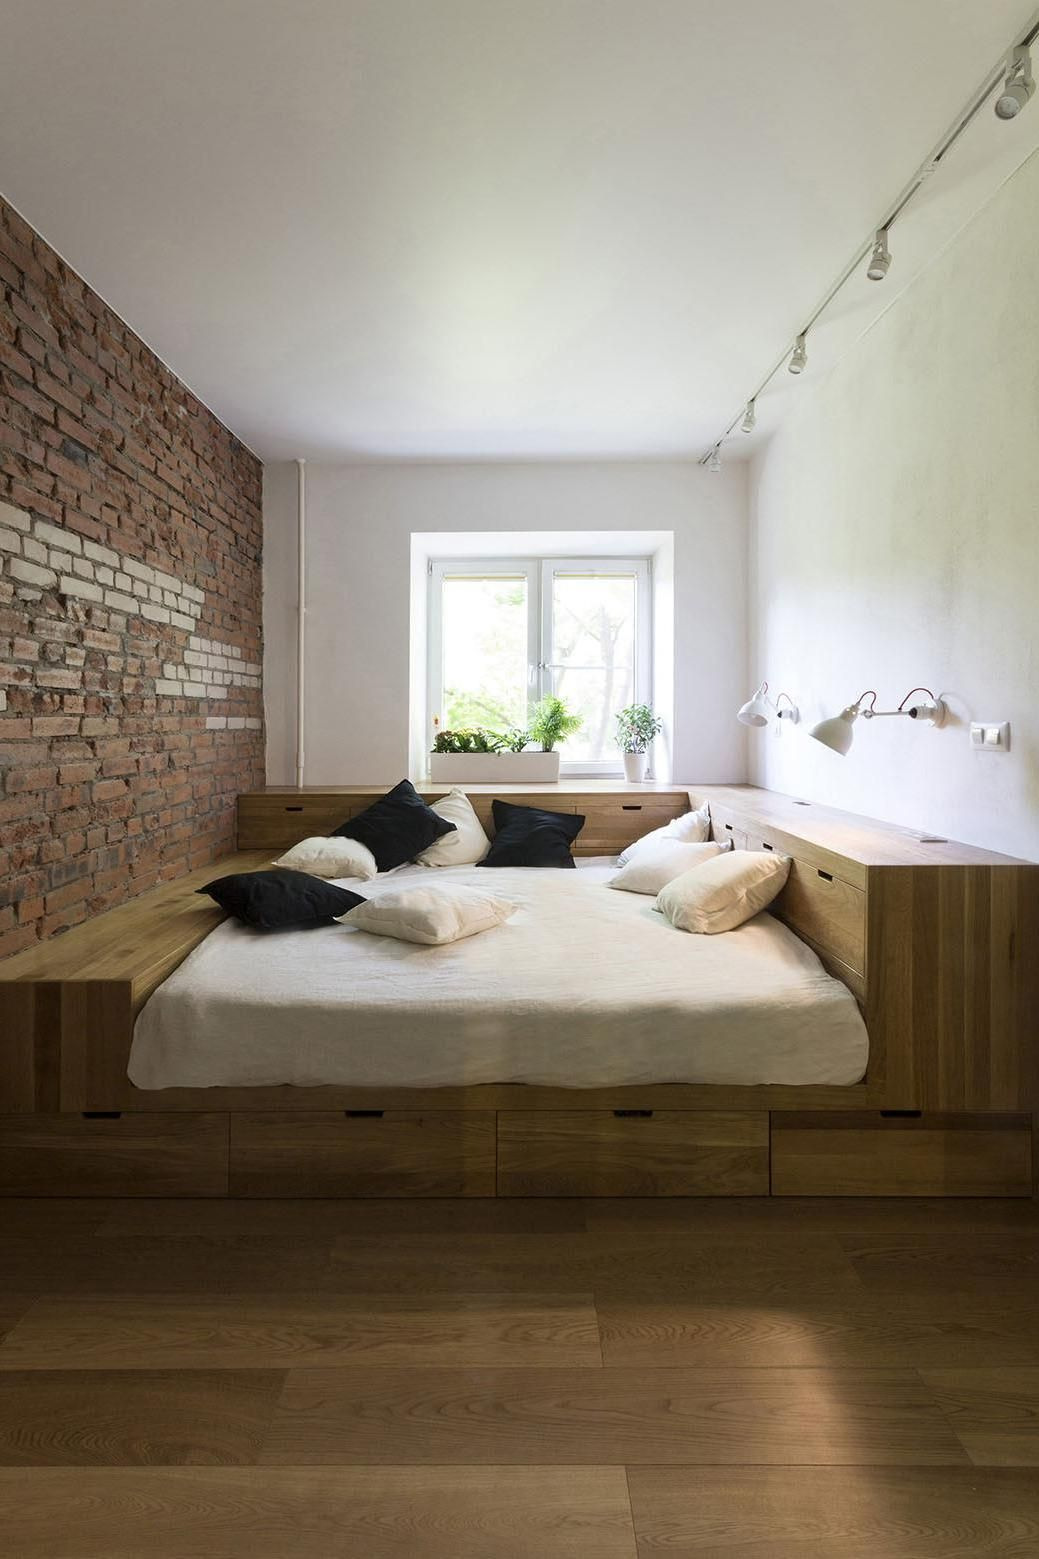 terrific exposed brick bedroom wall ideas   a terrific wooden bed podium with modern cream bedding and ...